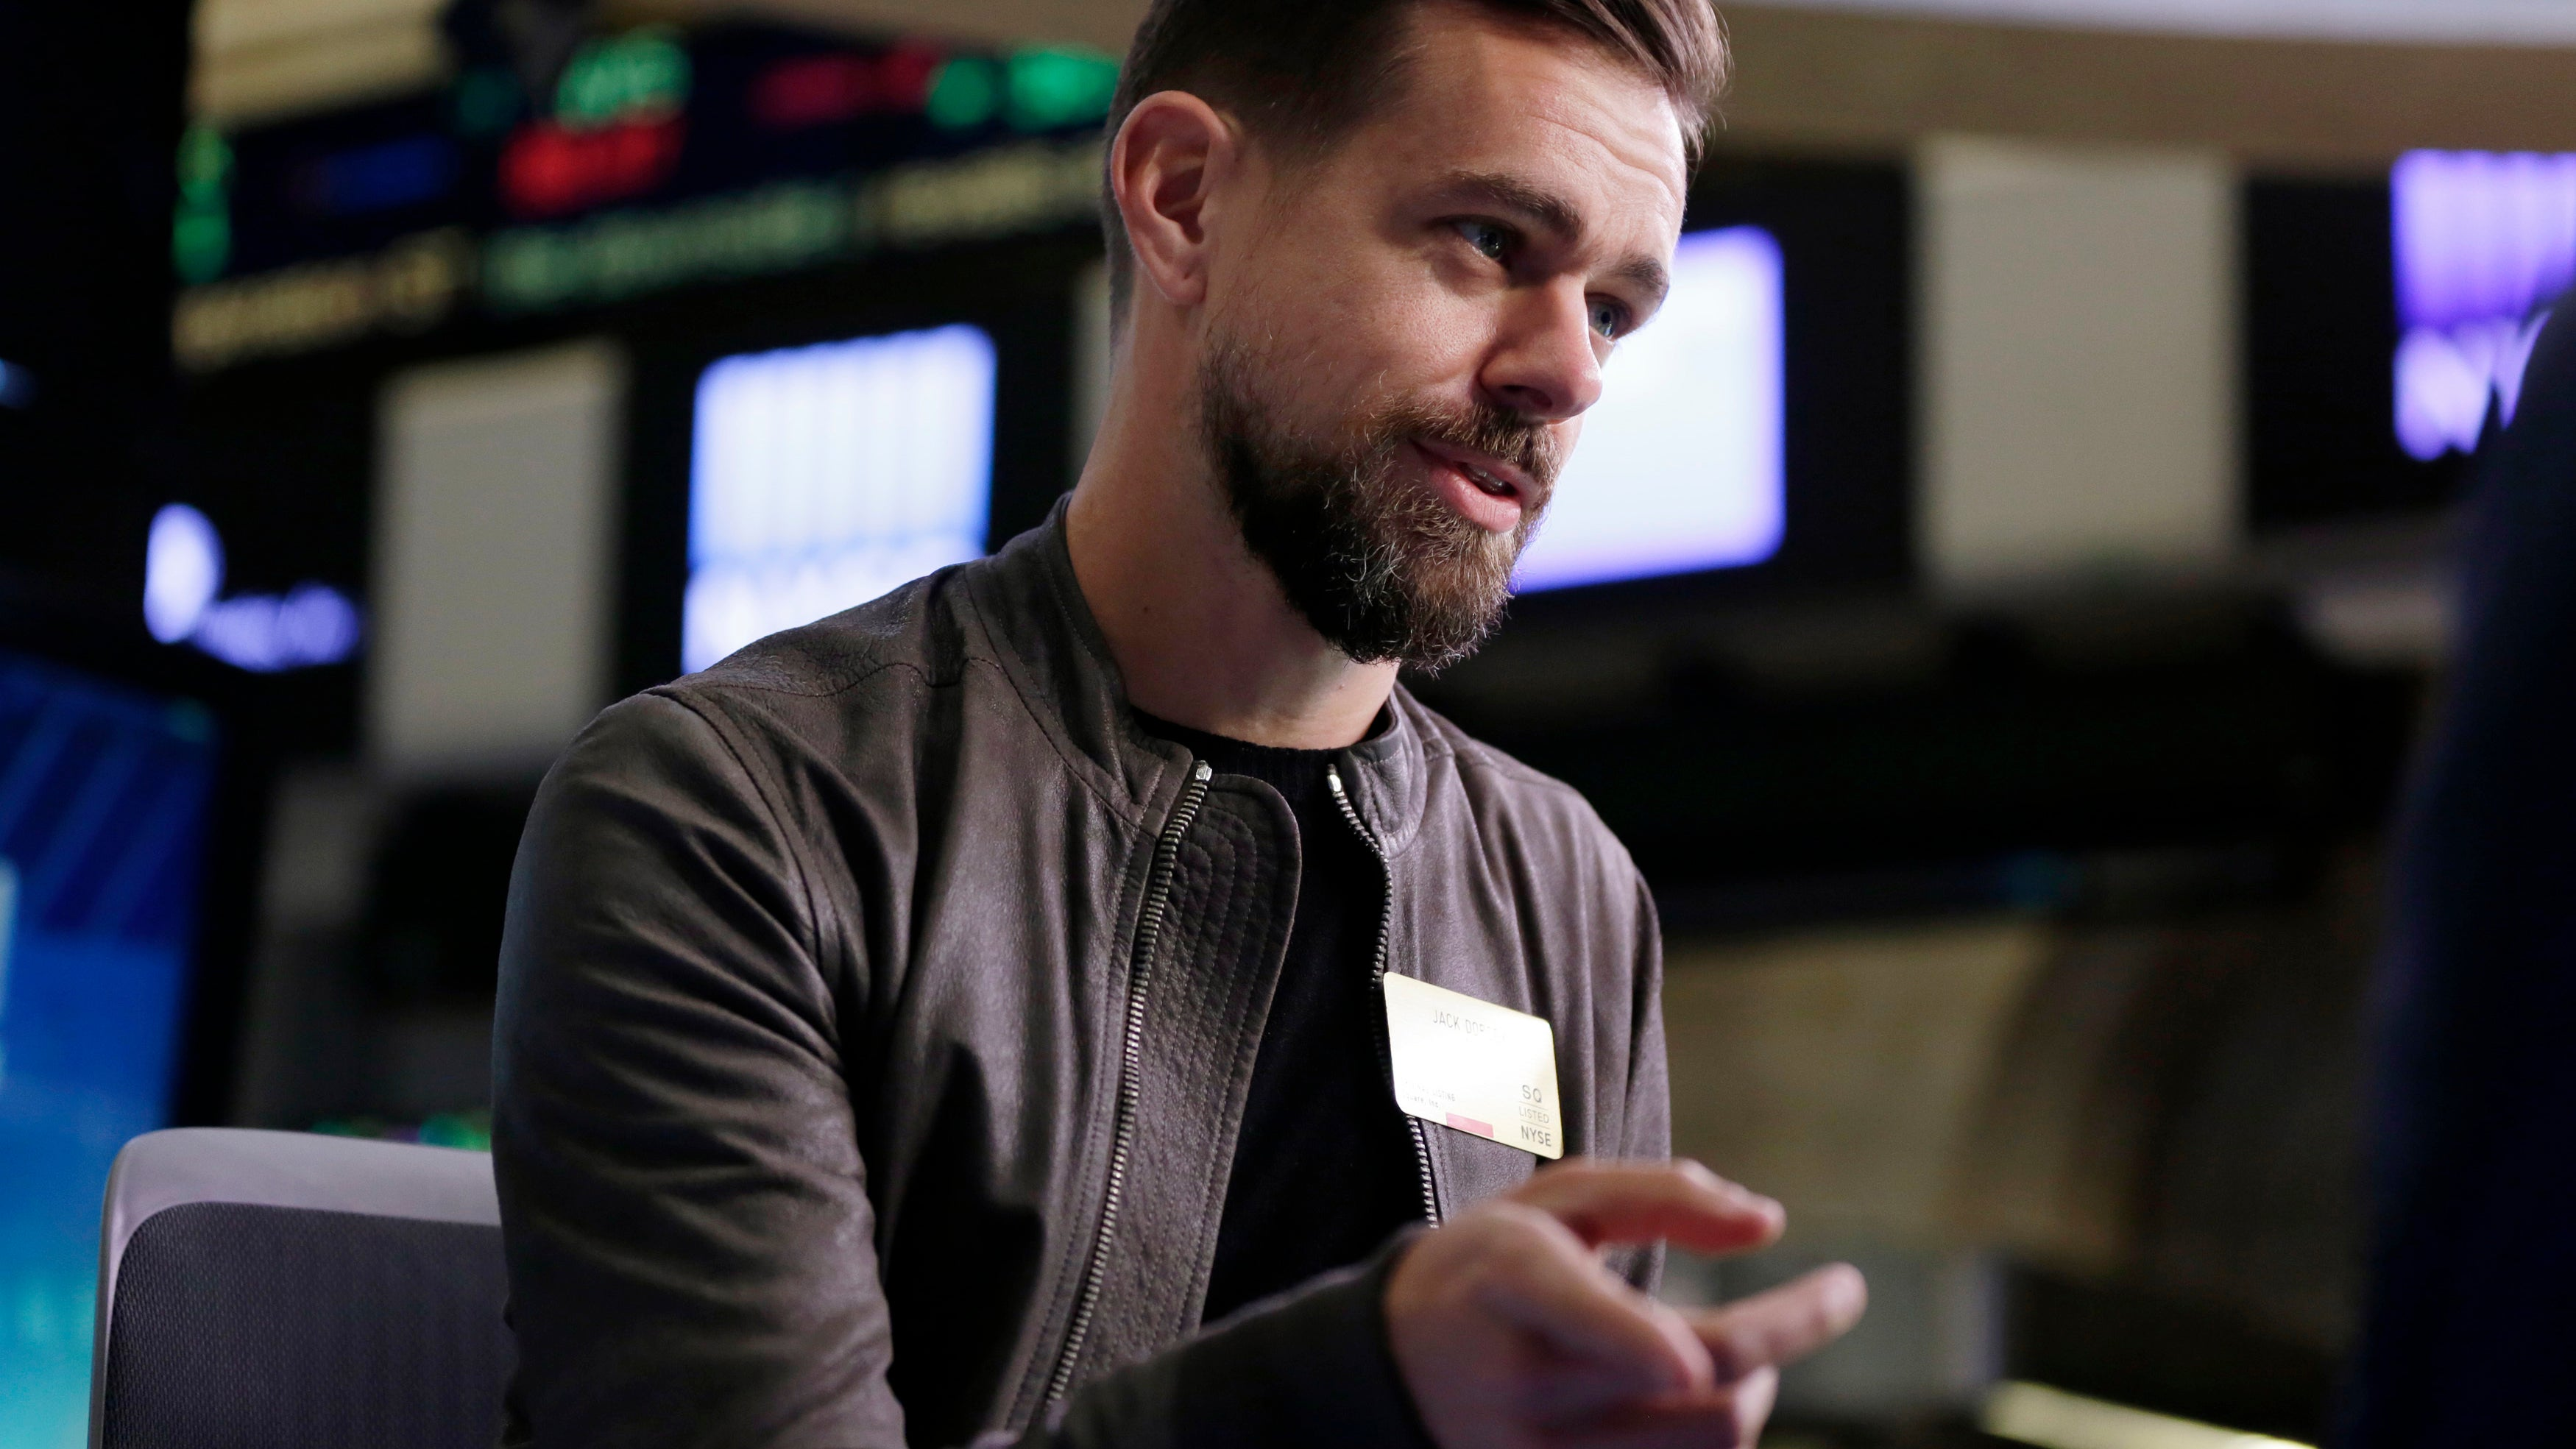 Twitter's Jack Dorsey promises changes to anti-harassment policies after #WomenBoycottTwitter